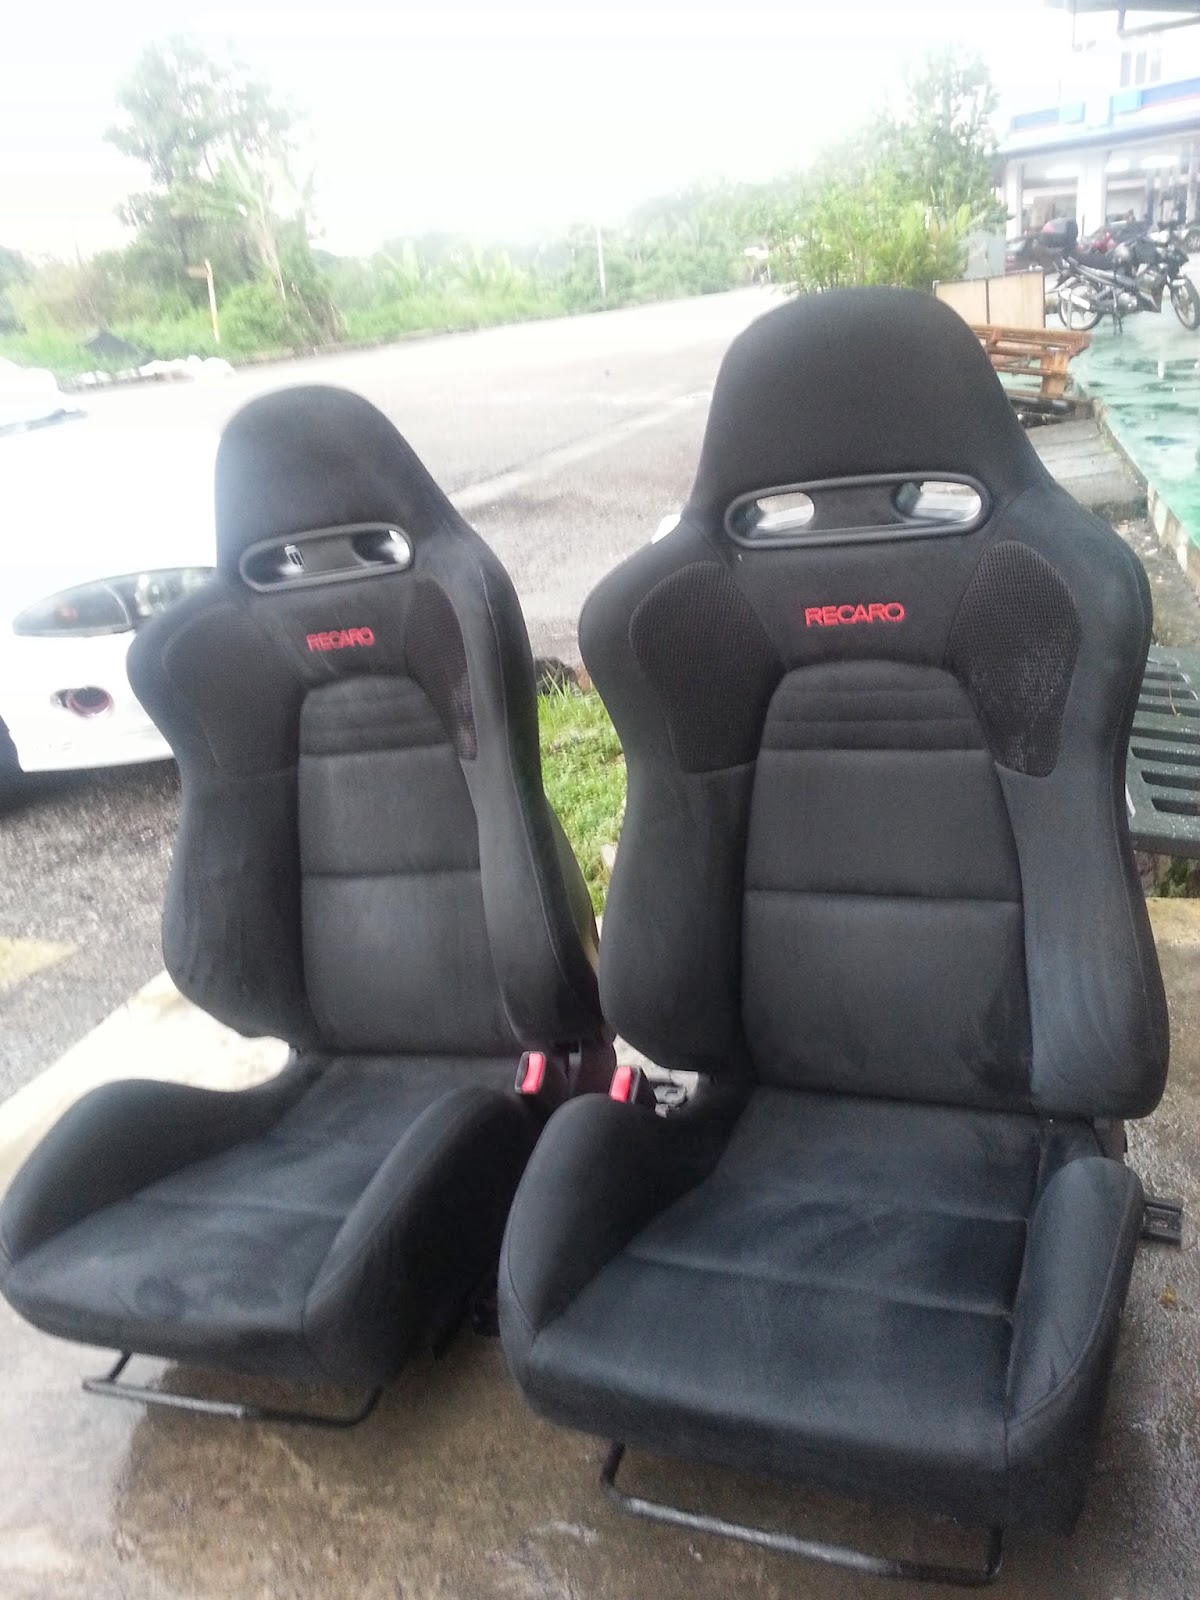 dingz garage seat recaro lancer evo 9 mr complete. Black Bedroom Furniture Sets. Home Design Ideas